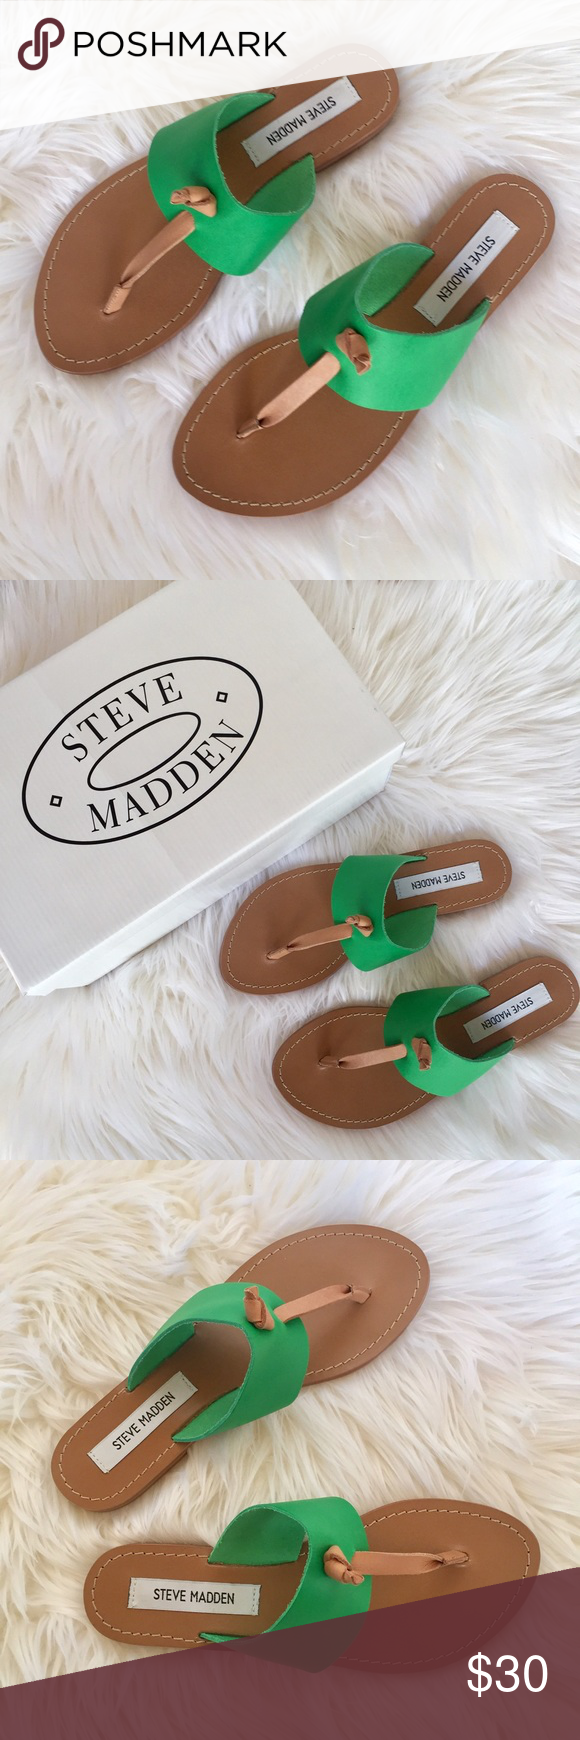 00d7c2135ad Steve Madden Olivia Flat Sandals Green NIB Green Color • Leather Upper •  Rubber Outsole • Made in Brazil • Size 7 • Brand New with Box Included Steve  Madden ...